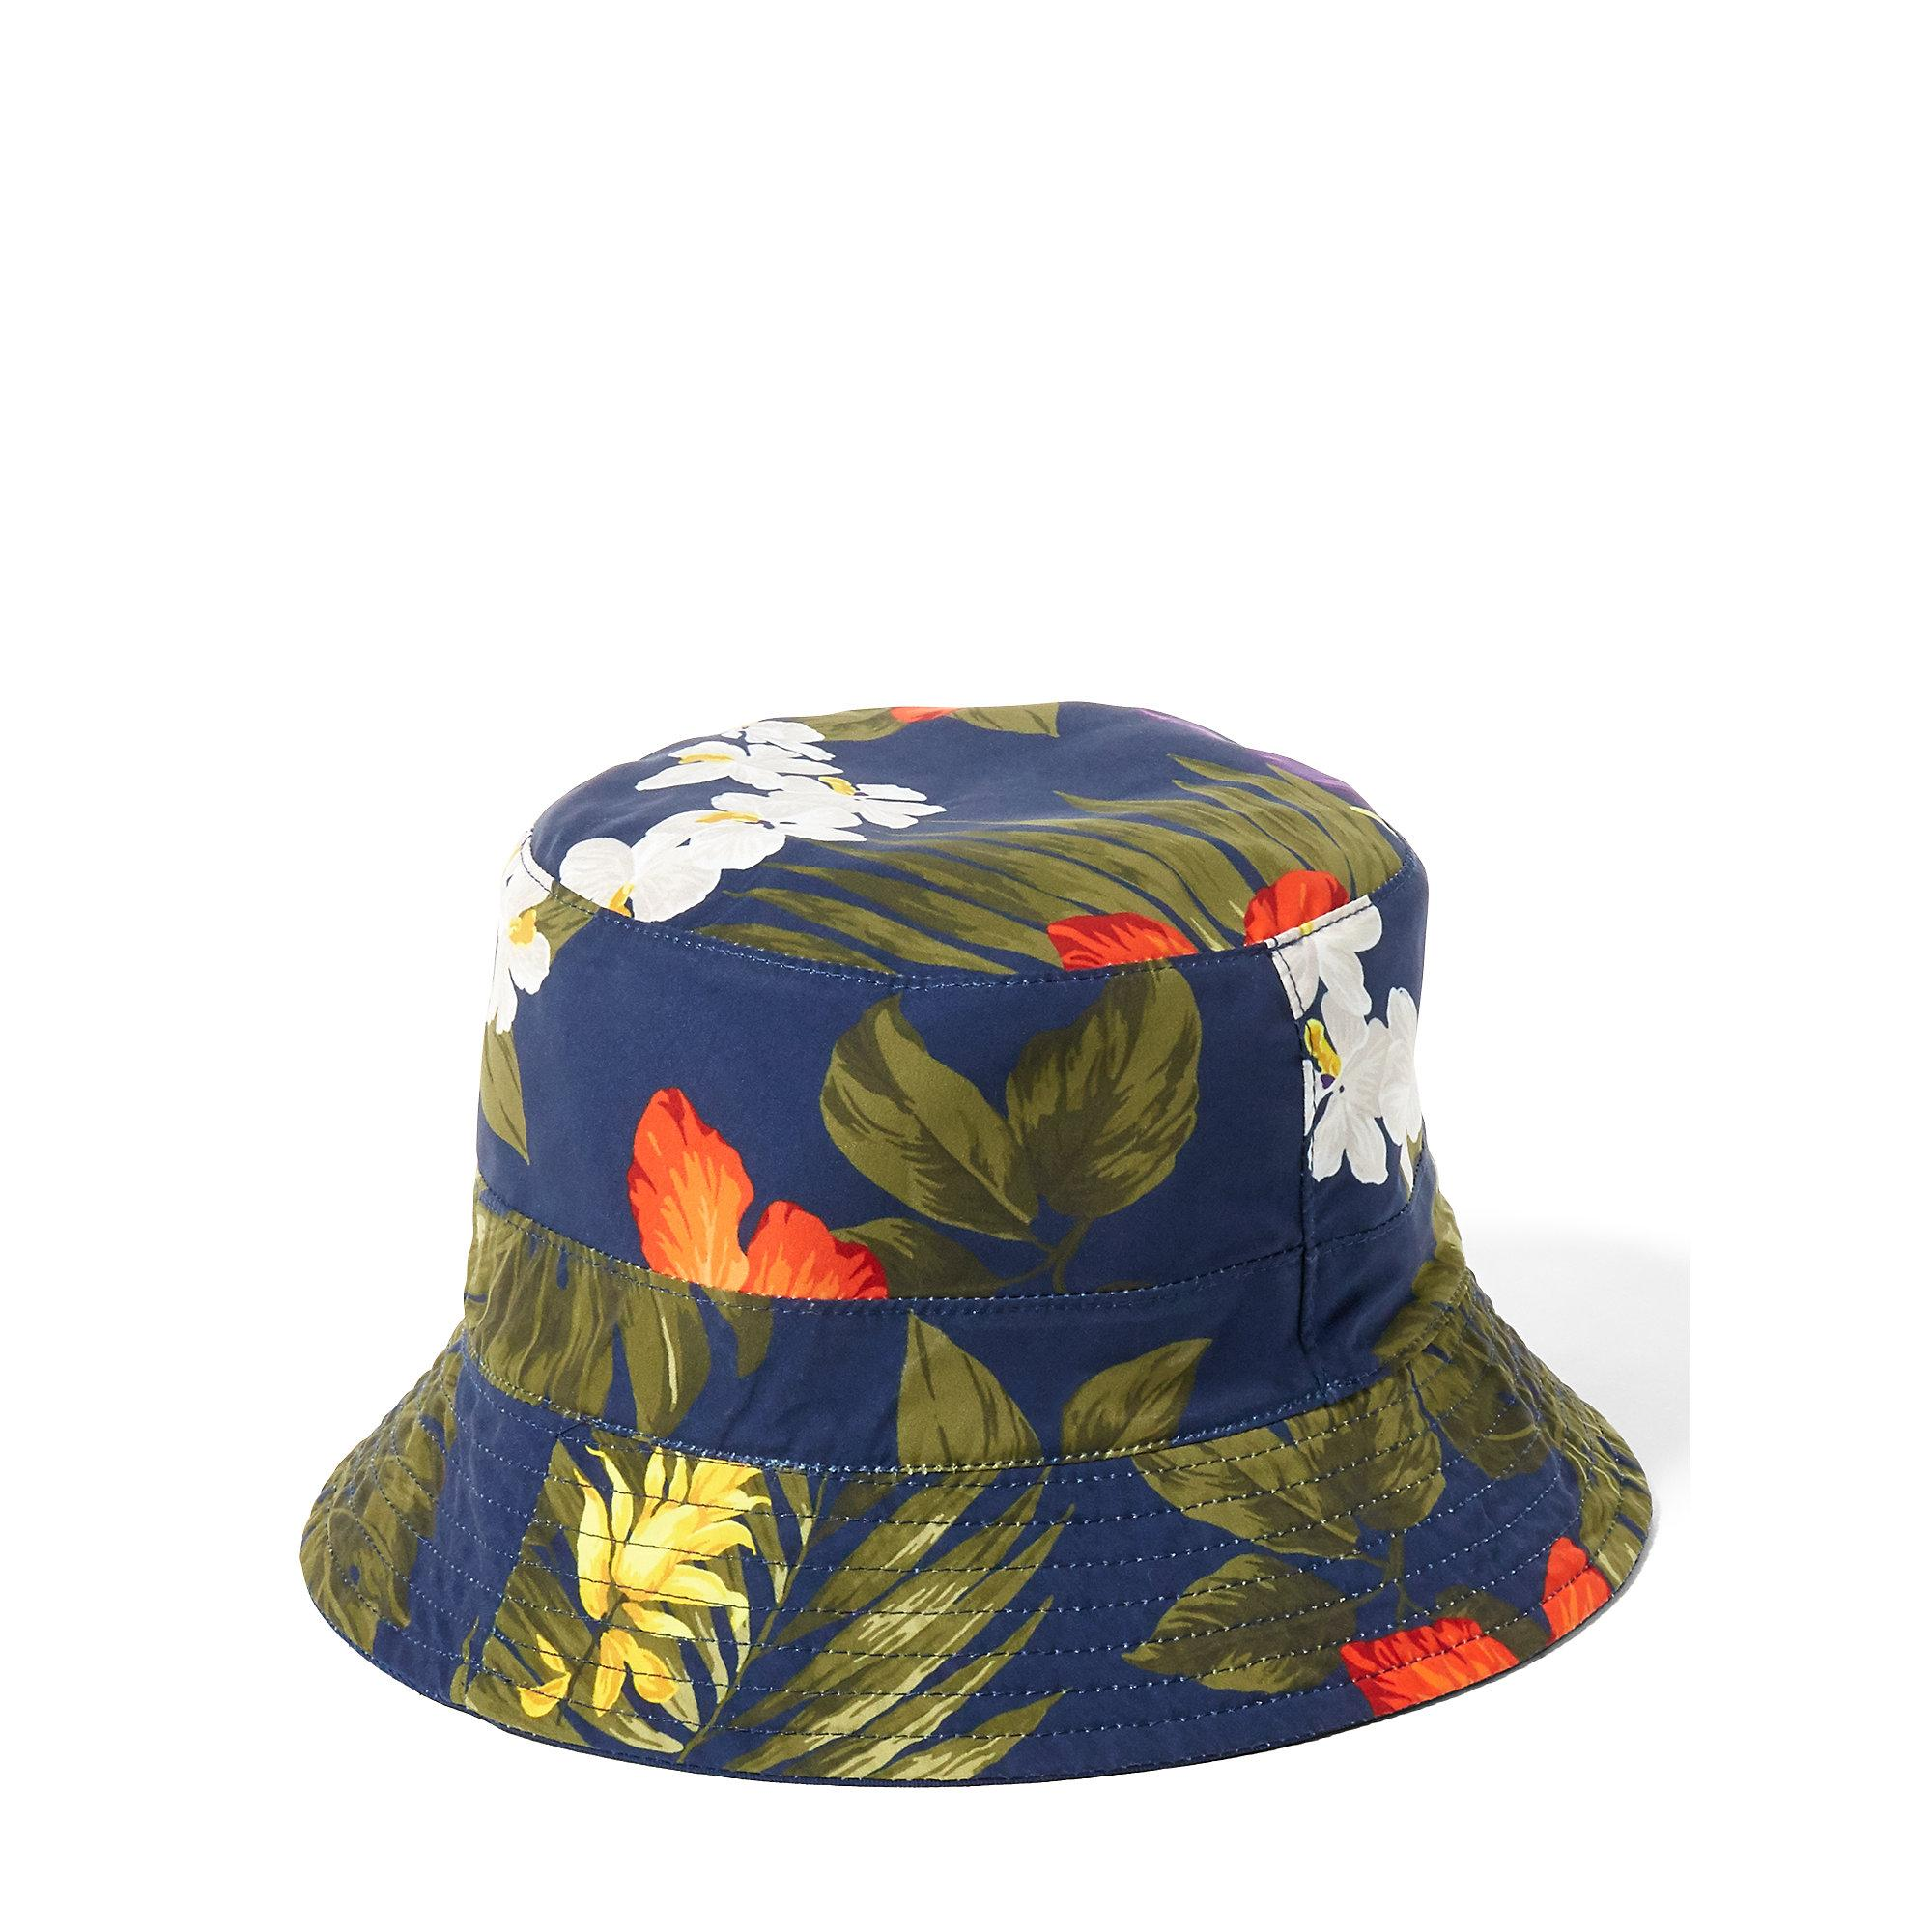 8d4f5a94a8fd3 Polo Ralph Lauren Reversible Twill Bucket Hat in Blue for Men - Lyst